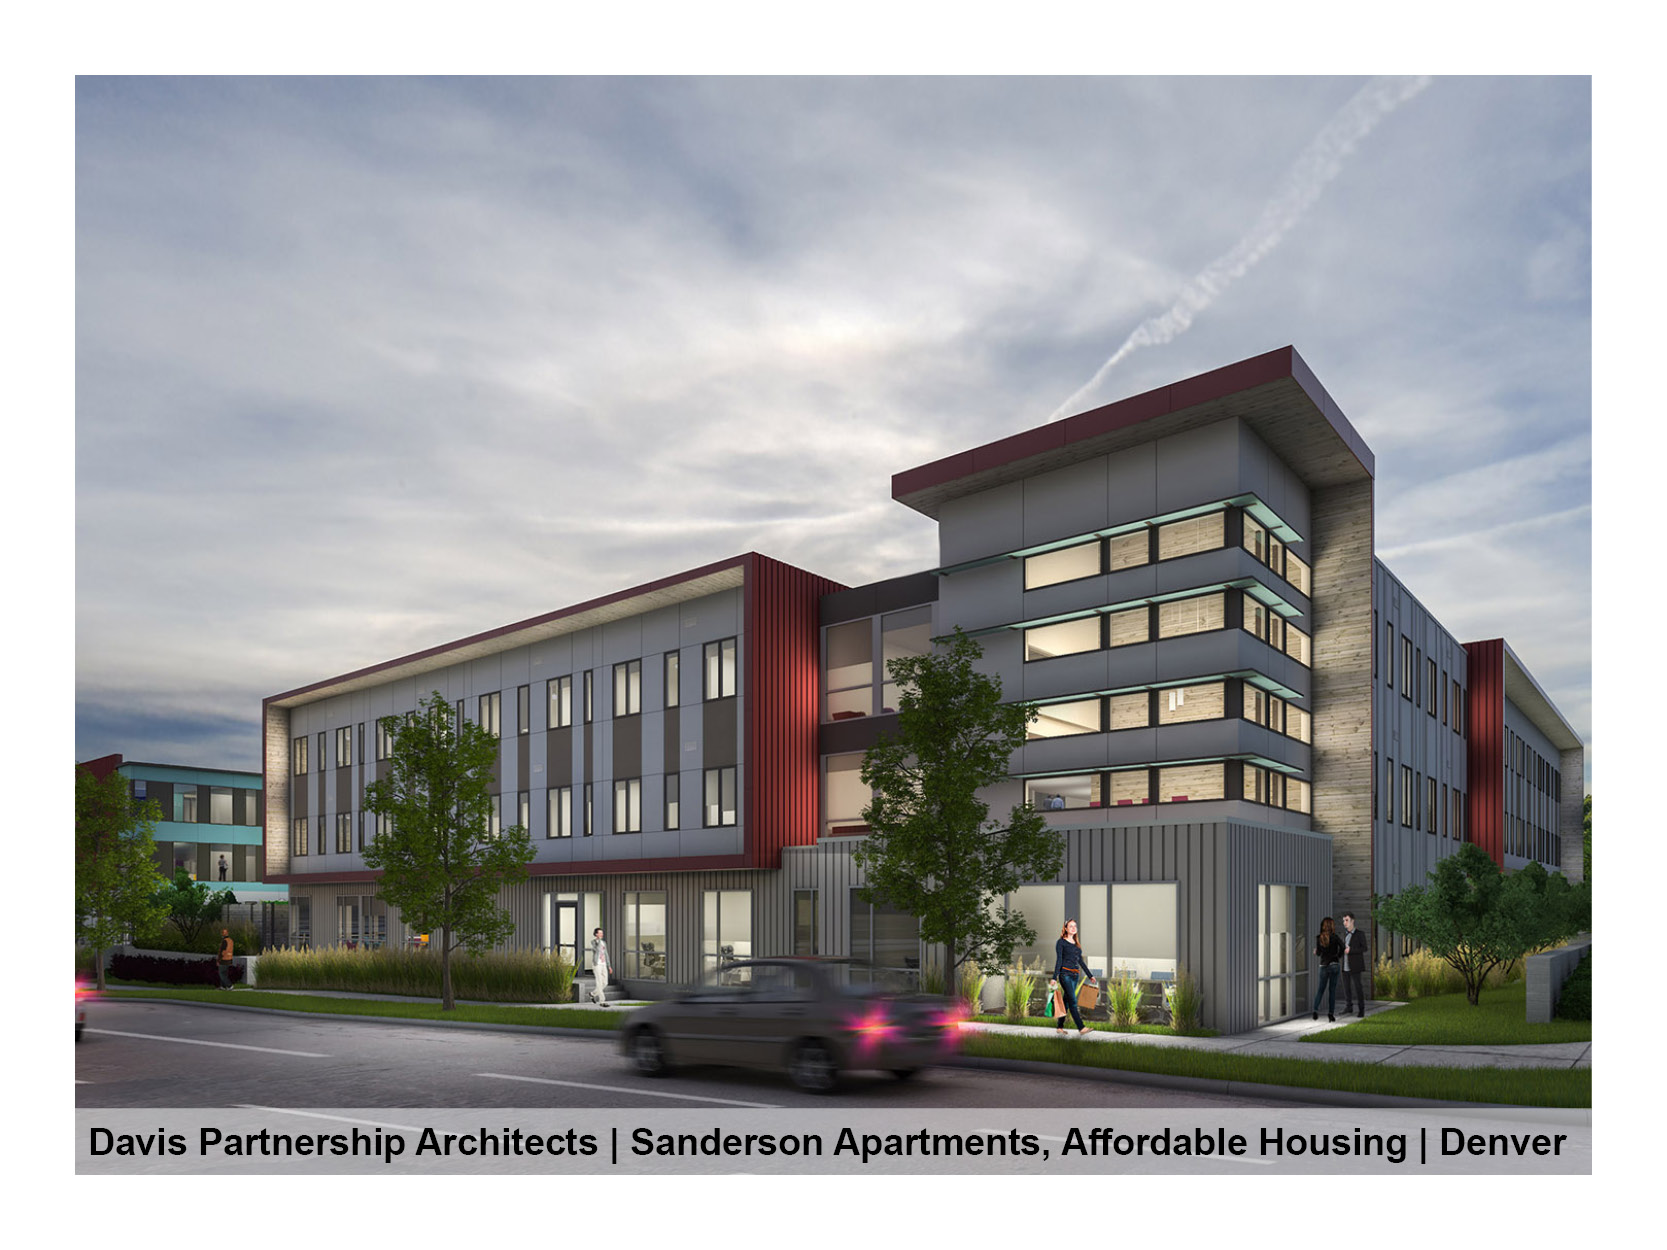 Davis Partnership Architects | Sanderson Apartments, Mental Health Center of Denver Multifamily